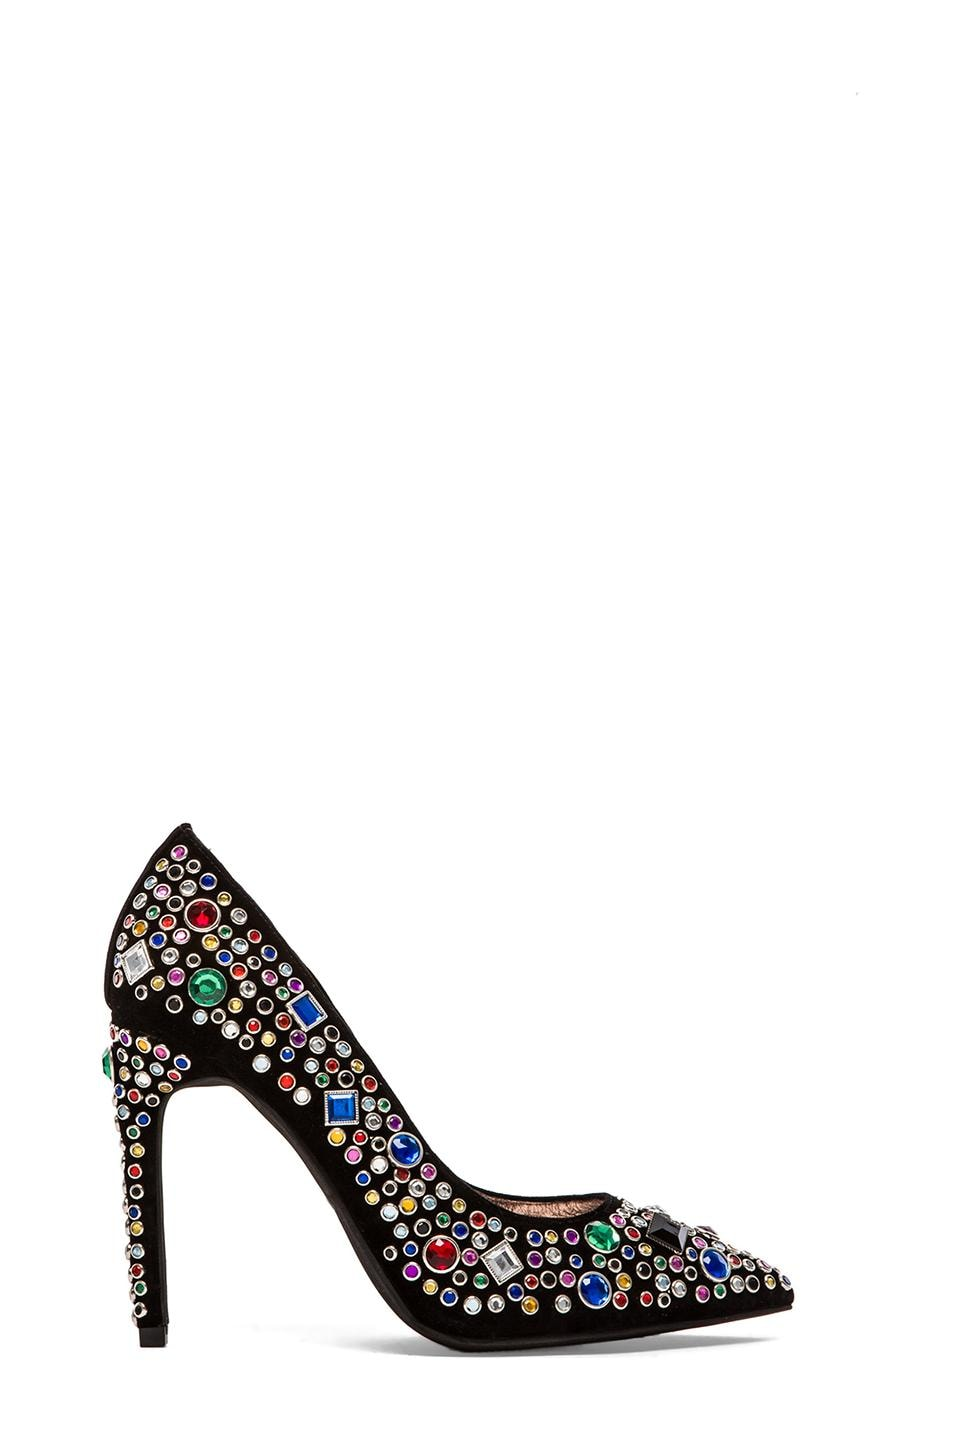 Jeffrey Campbell Dulce Embellished Heel in Black Multi